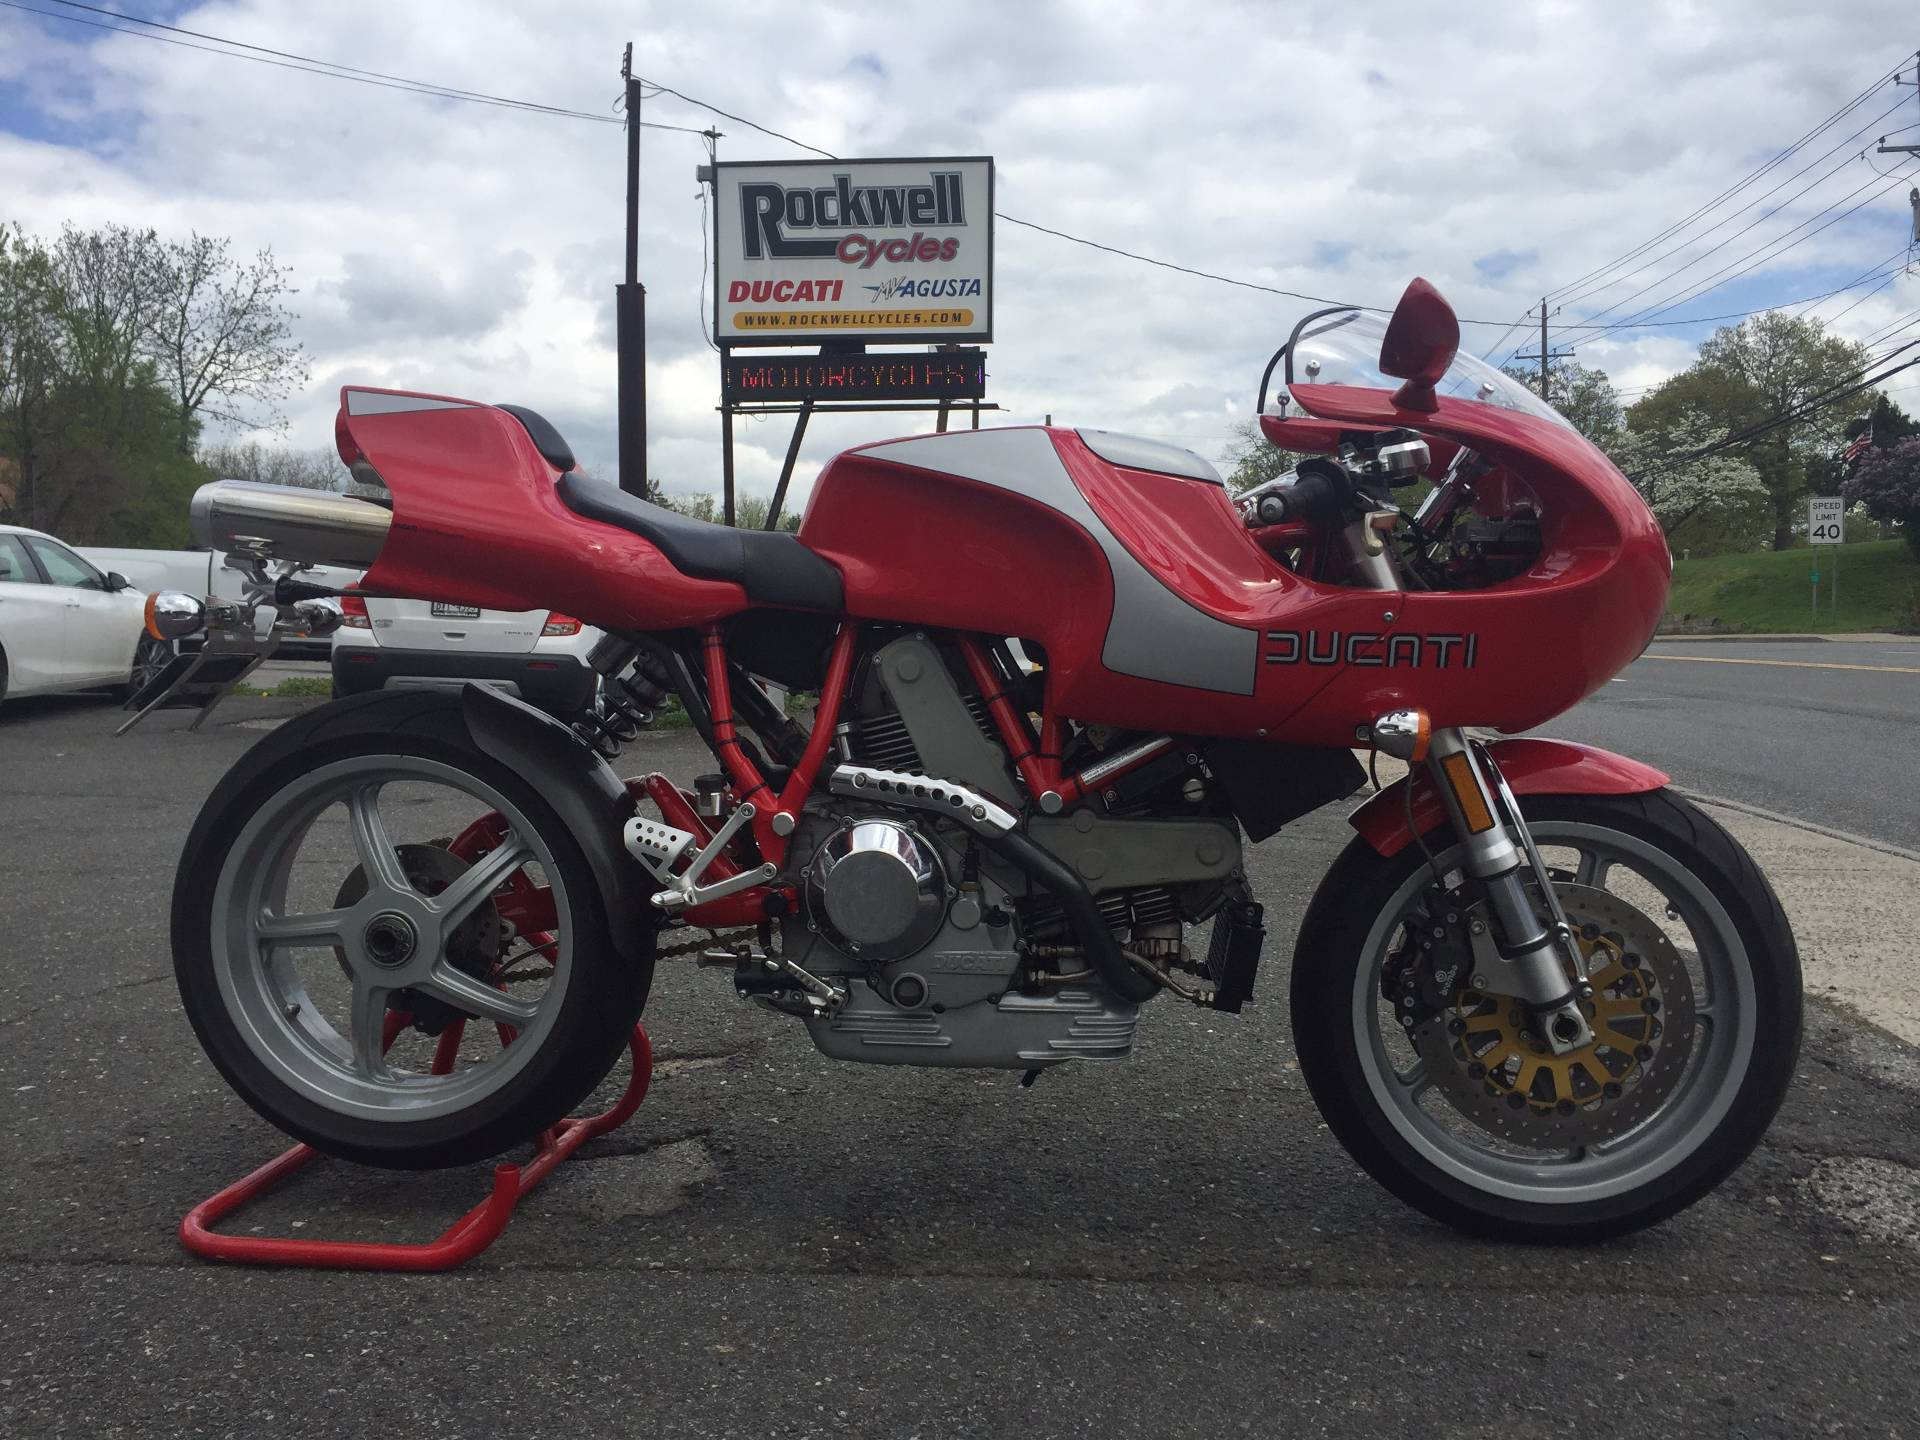 2002 Ducati 900 MHR Mike Hailwood Replica